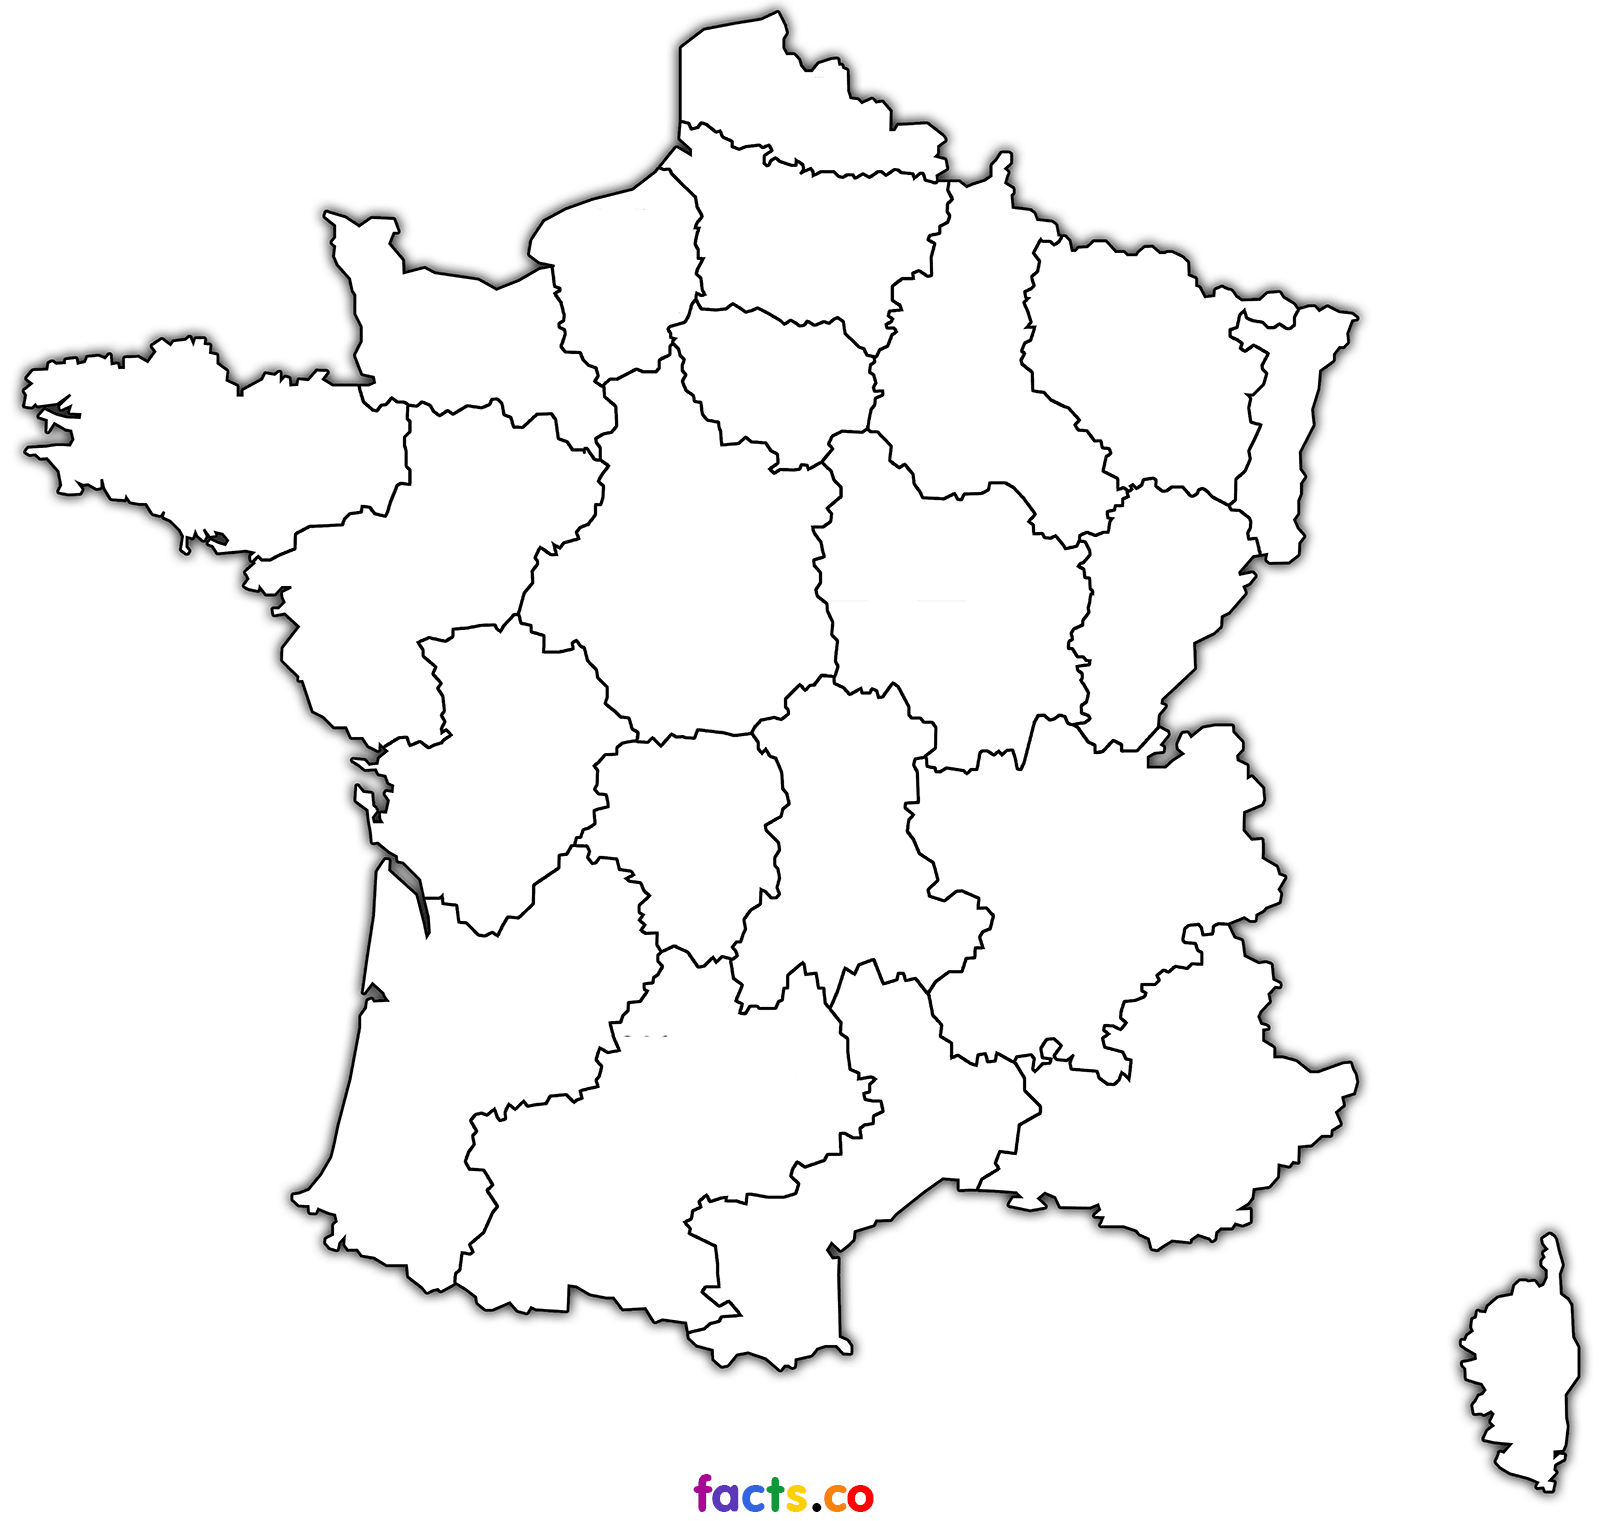 france map coloring page blank map of france coloring page print color fun coloring page map france